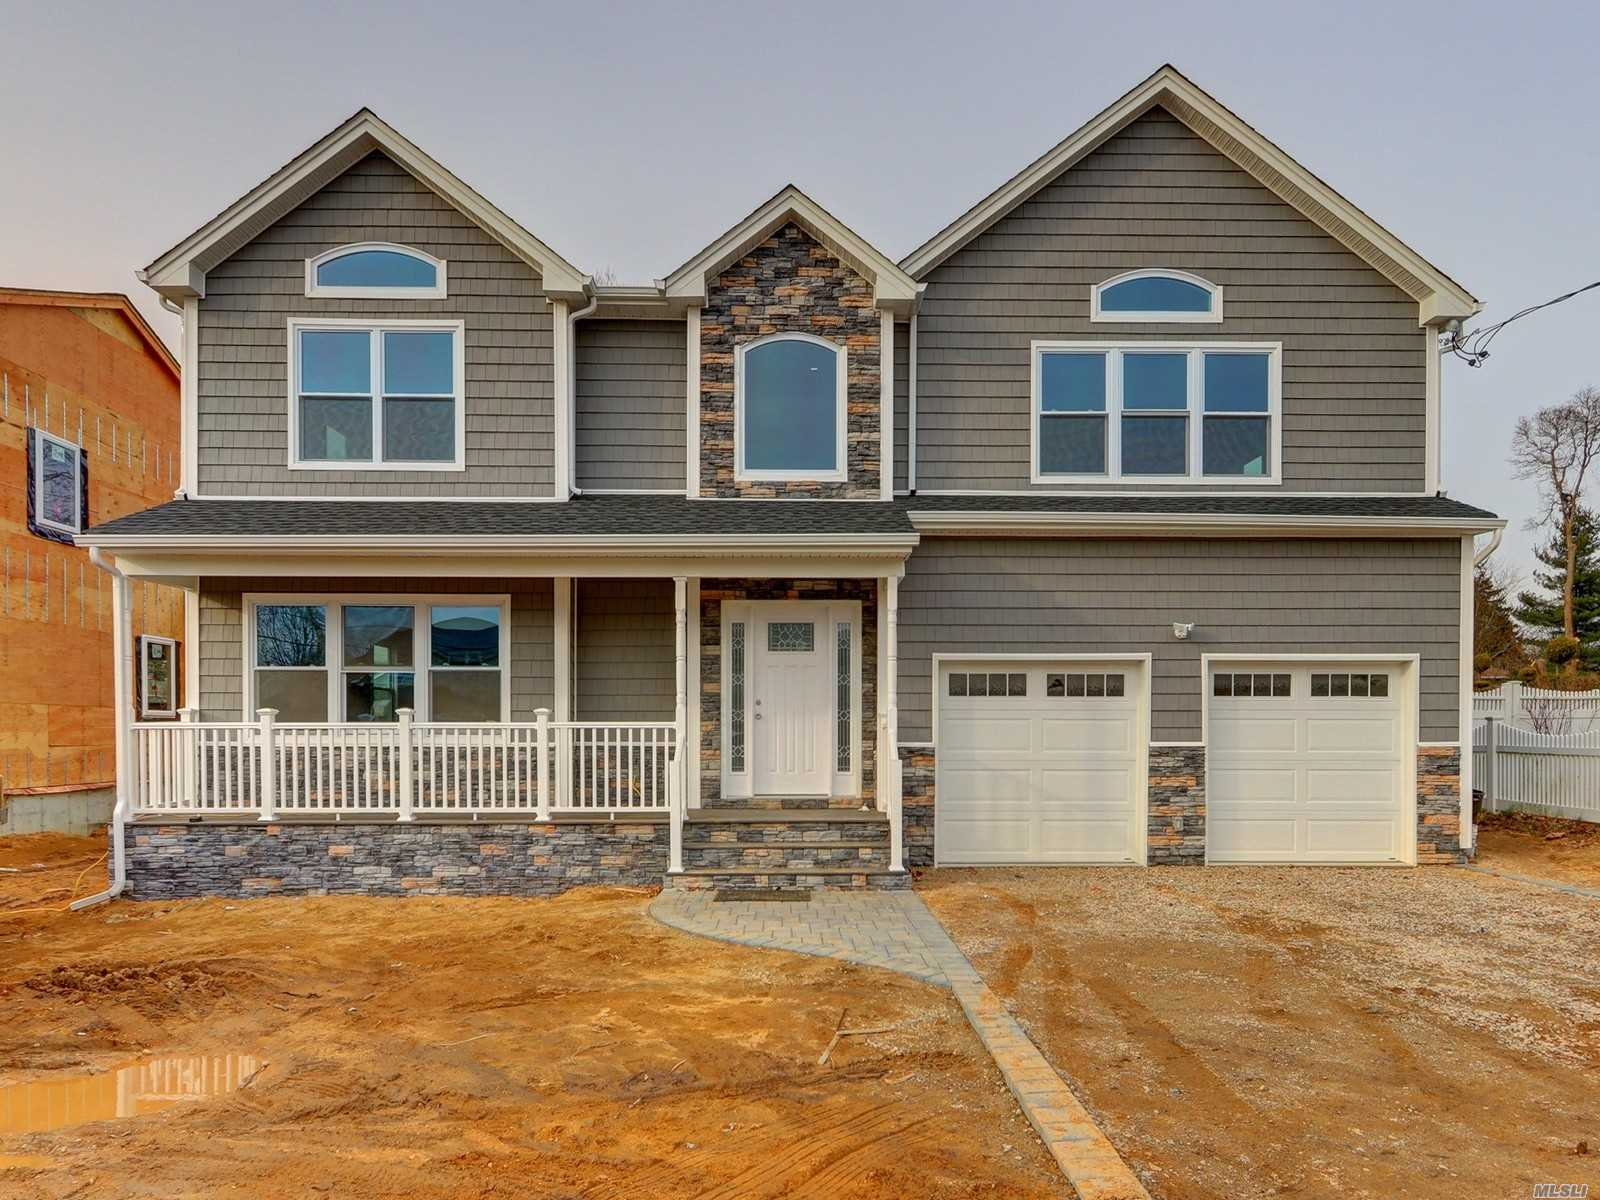 Brand New Construction! Massive 3400 Sf Custom Colonial 4 Bedroom, 2 1/2 Bath With Open Floor Plan On 65 X 140 Lot. . Gas Heating And Cooking. Gas Fireplace. Huge Master Bedroom Suite. Full Unfinished Basement W 8-Foot Ceilings And Outside Entrance. Vinyl Siding And Cultured Stone, Anderson Windows, 200 Amp Service, Hi-Hats Galore, Crown Molding, Hardwood Floors Throughout, P/D Attic. Front Porch, Oversize Driveway, 2 Car Garage.